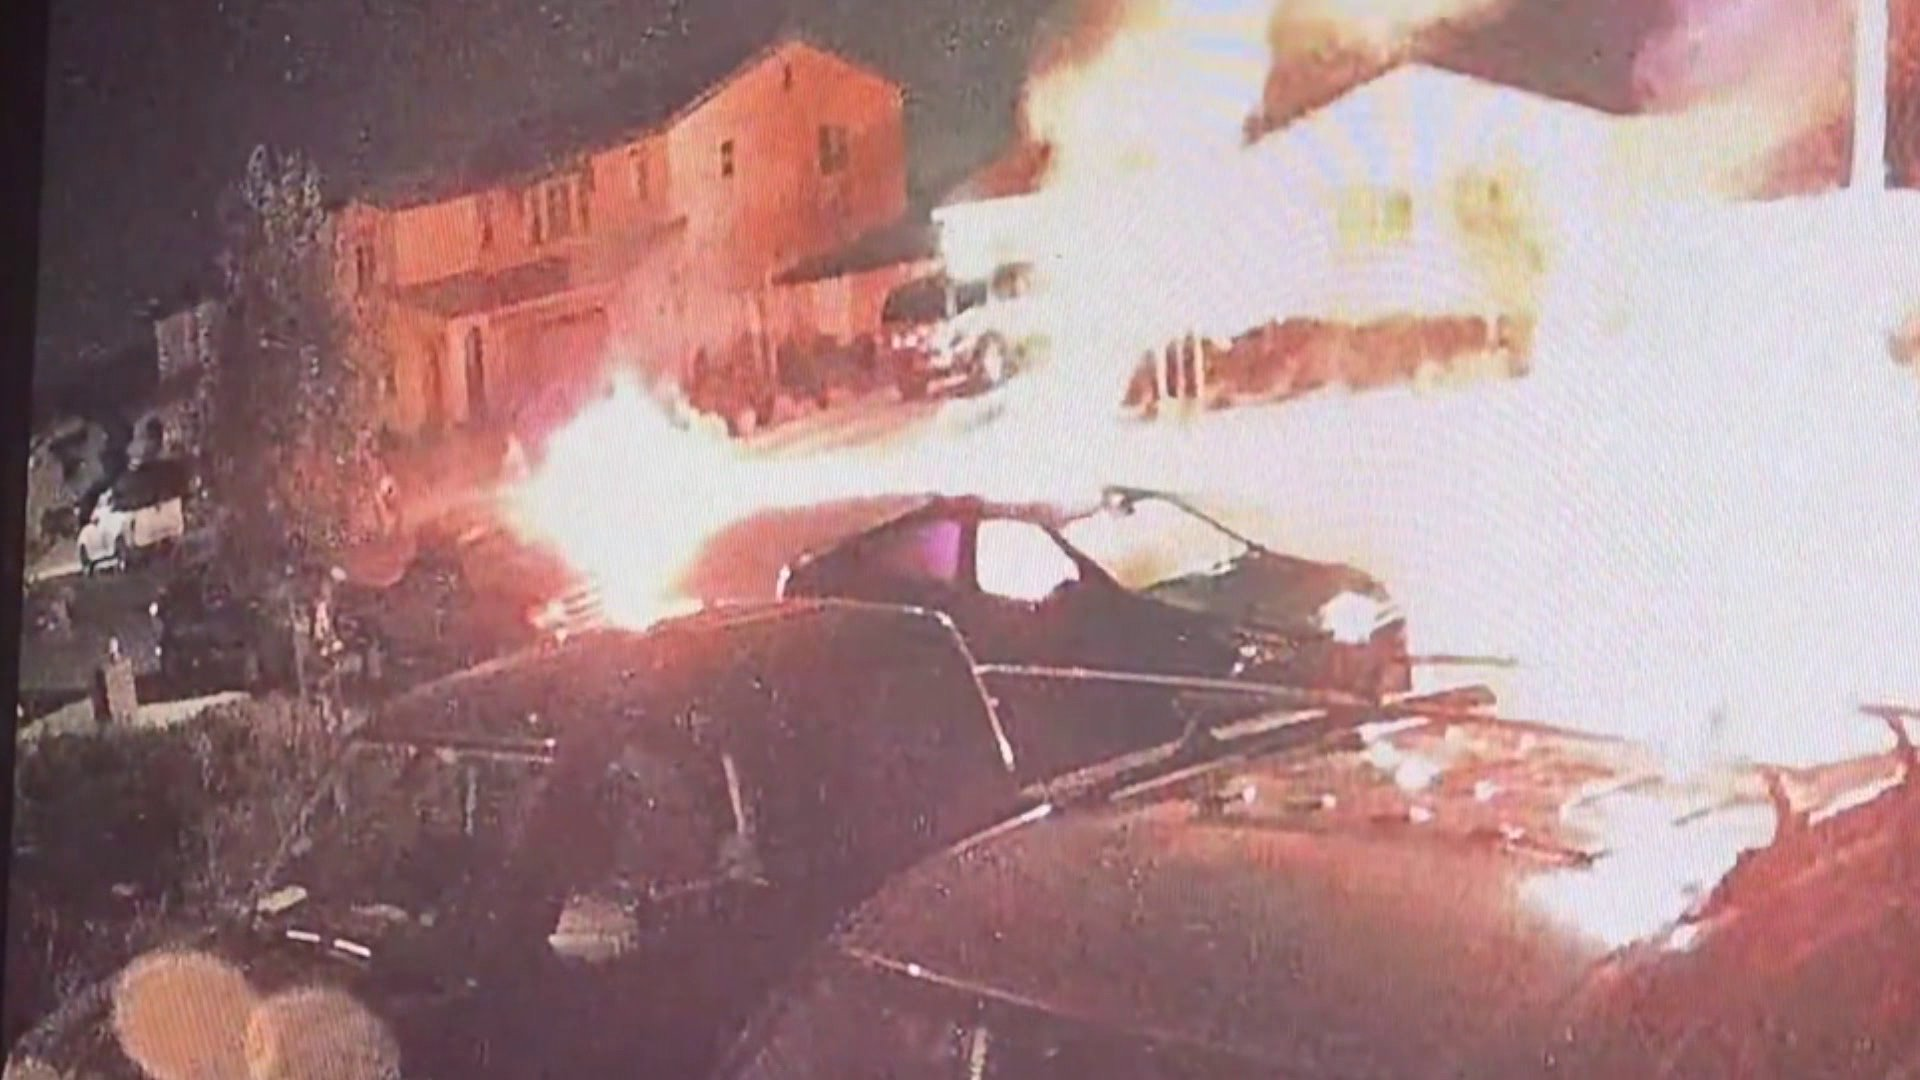 Video captured on July 31 around 4 a.m. shows a suspected arsonist running away after he set a car on fire in San Jacinto.